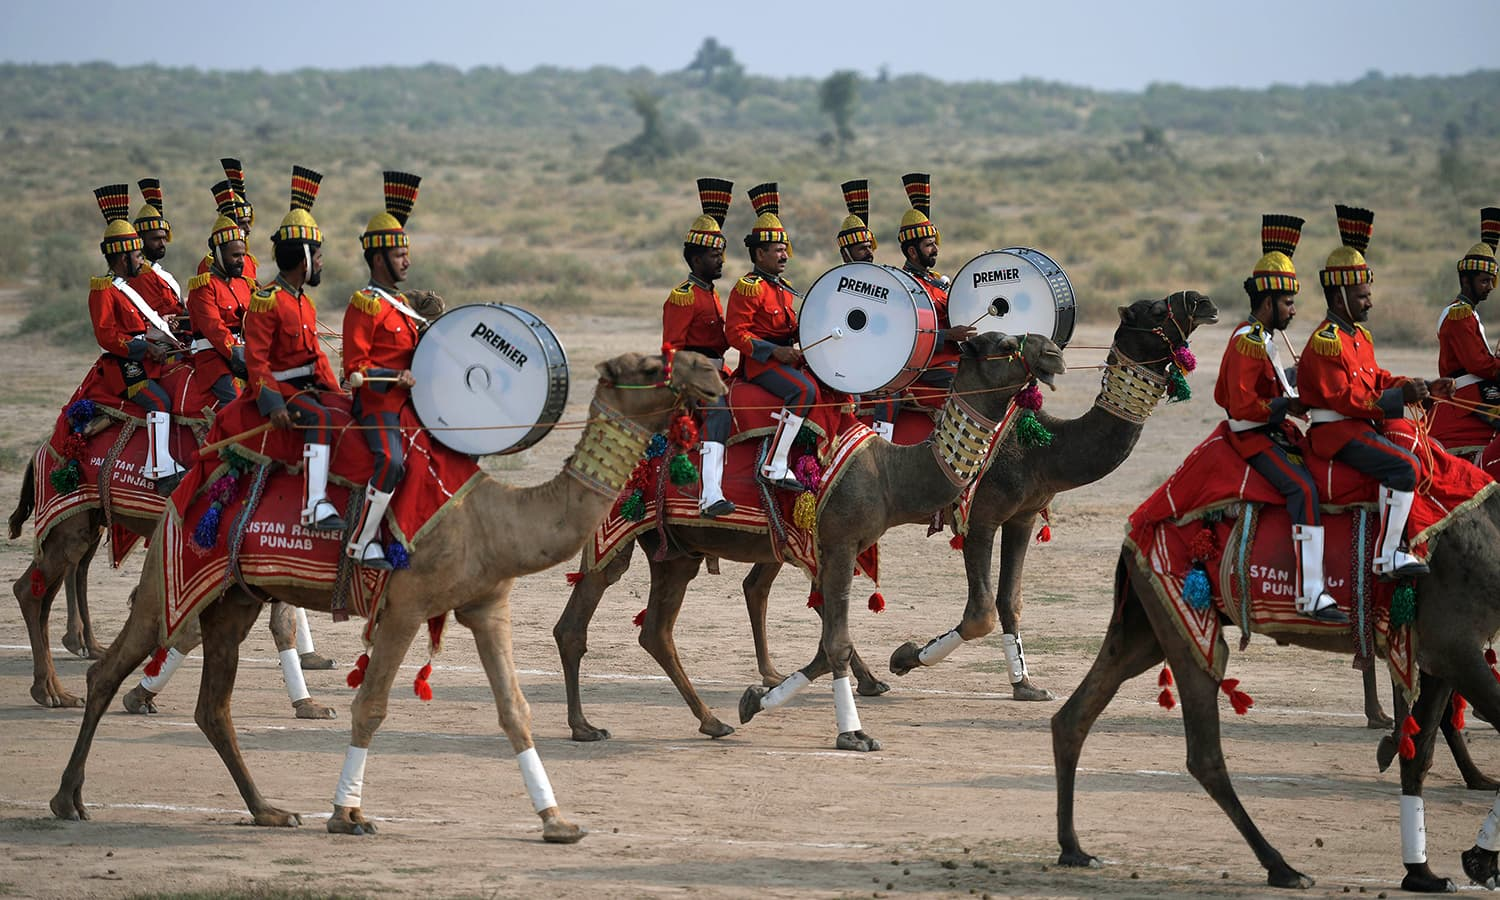 In this photograph taken on November 13, 2015, band members of Pakistan Desert Rangers, sit on their camels as they perform during a march in Moj Garh, some 100 kilometres east of Bahawalpur in Punjab province. —AFP